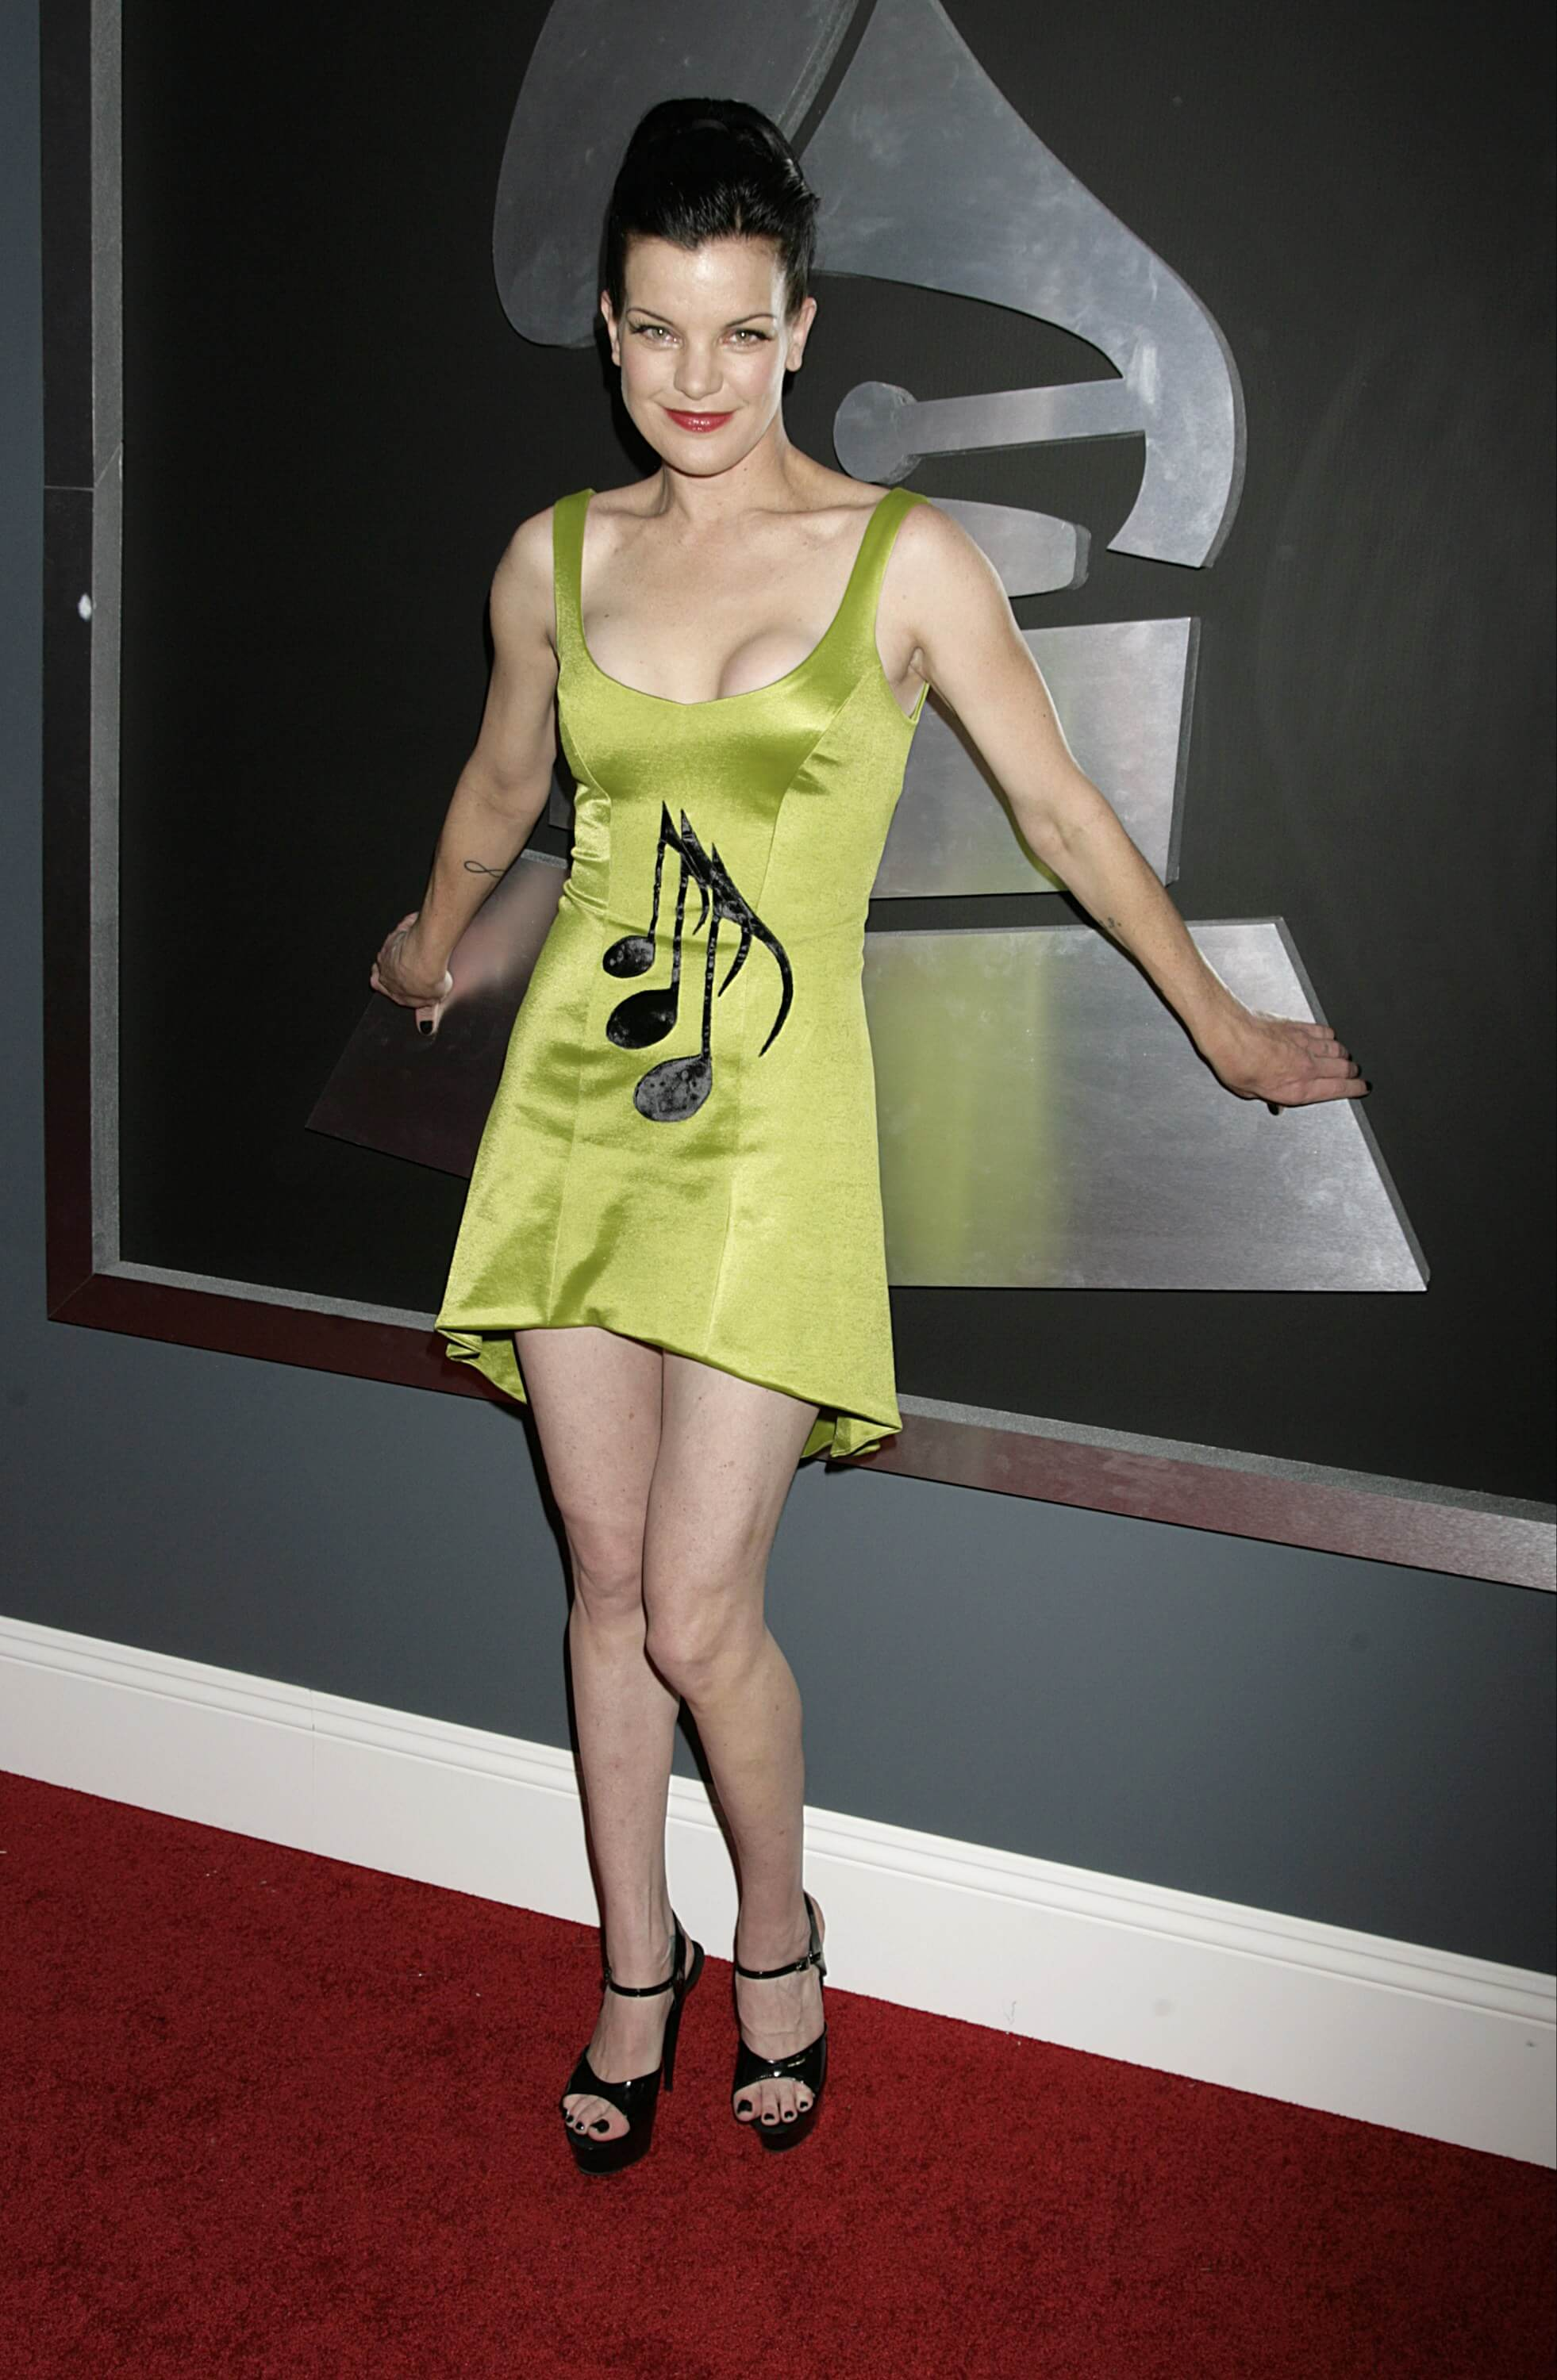 pauley perrette feet